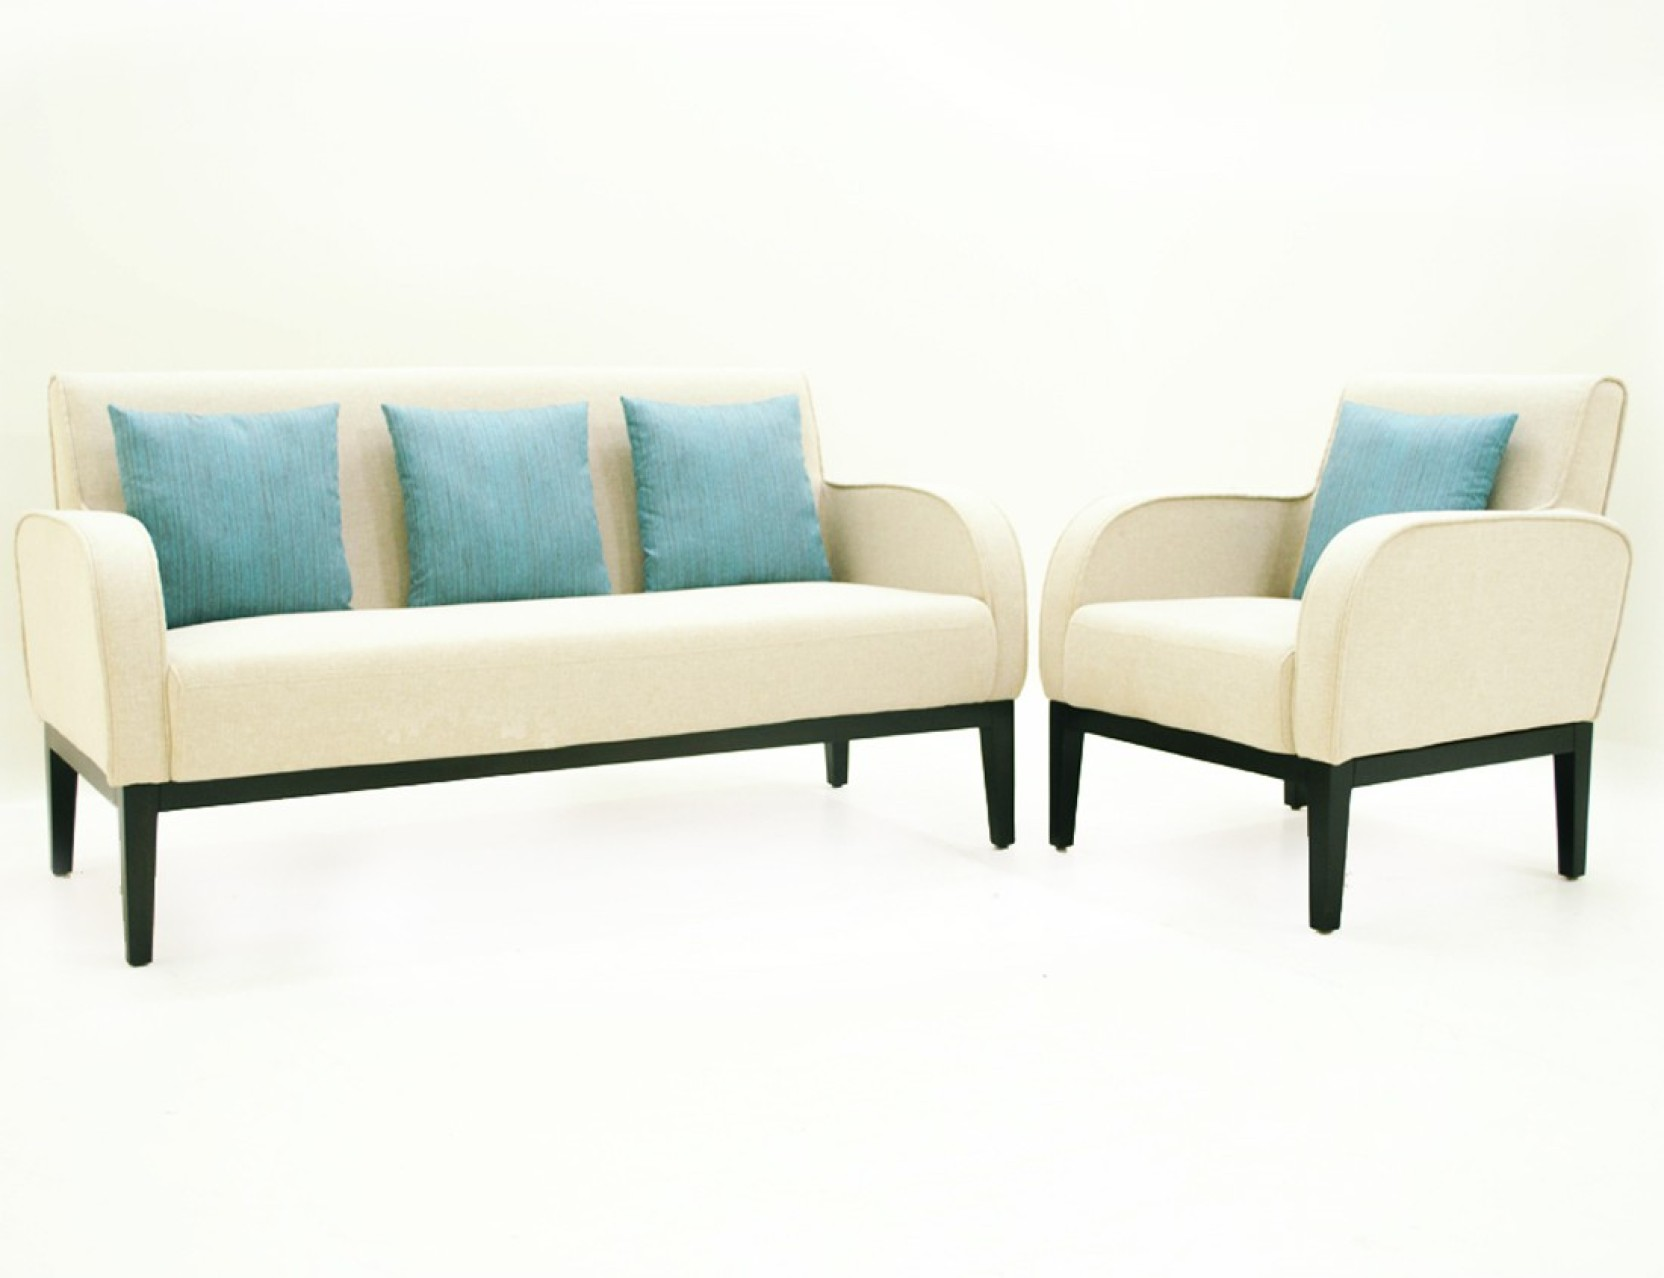 Please consult ... I want to buy a corner sofa. Which mechanism is more reliable: a dolphin or an euro-book